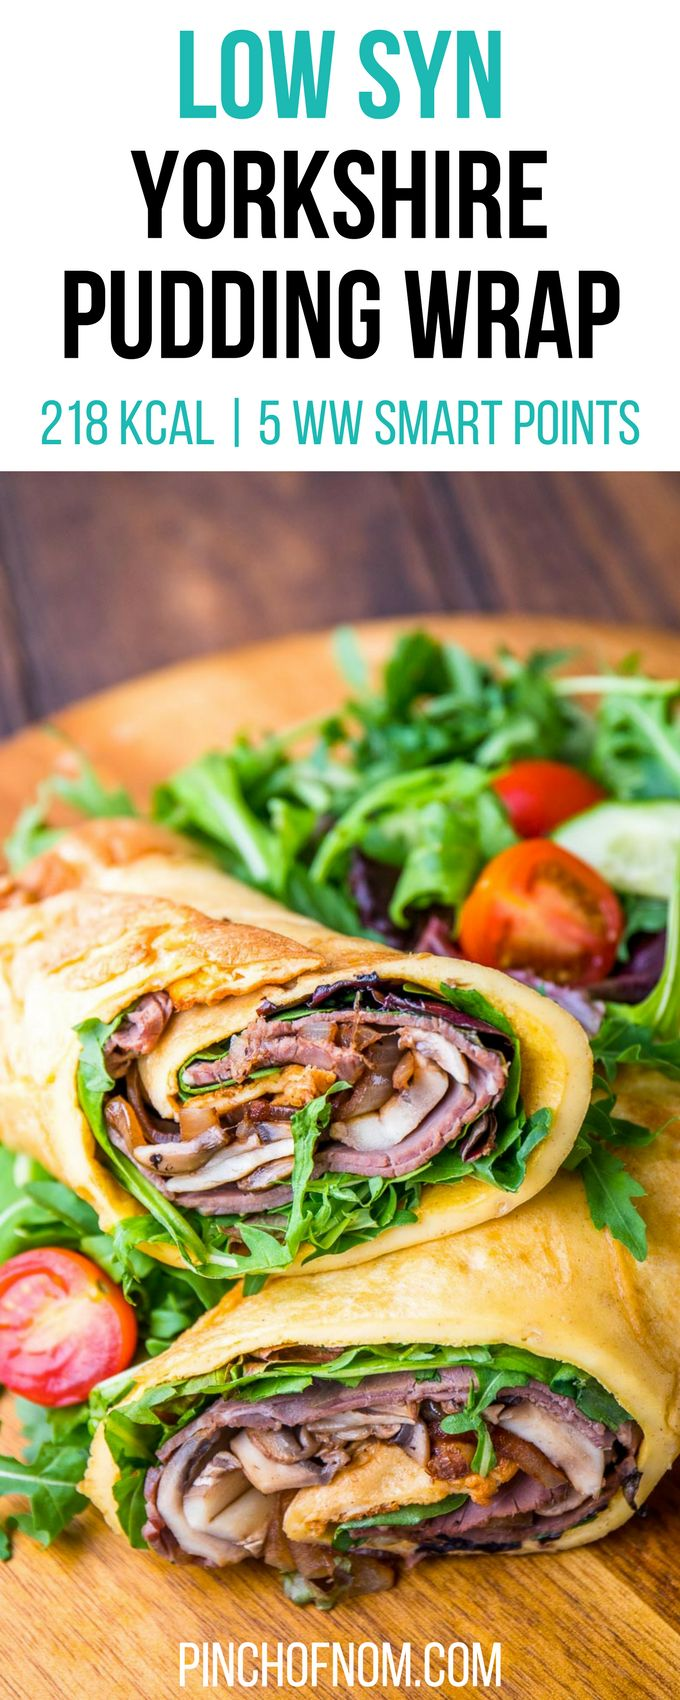 Low Syn Yorkshire Pudding Wrap | Slimming World | pinchofnom.com  218 Kcal | 5 Weight Watchers Smart Points | 3 Syns - Slimming World